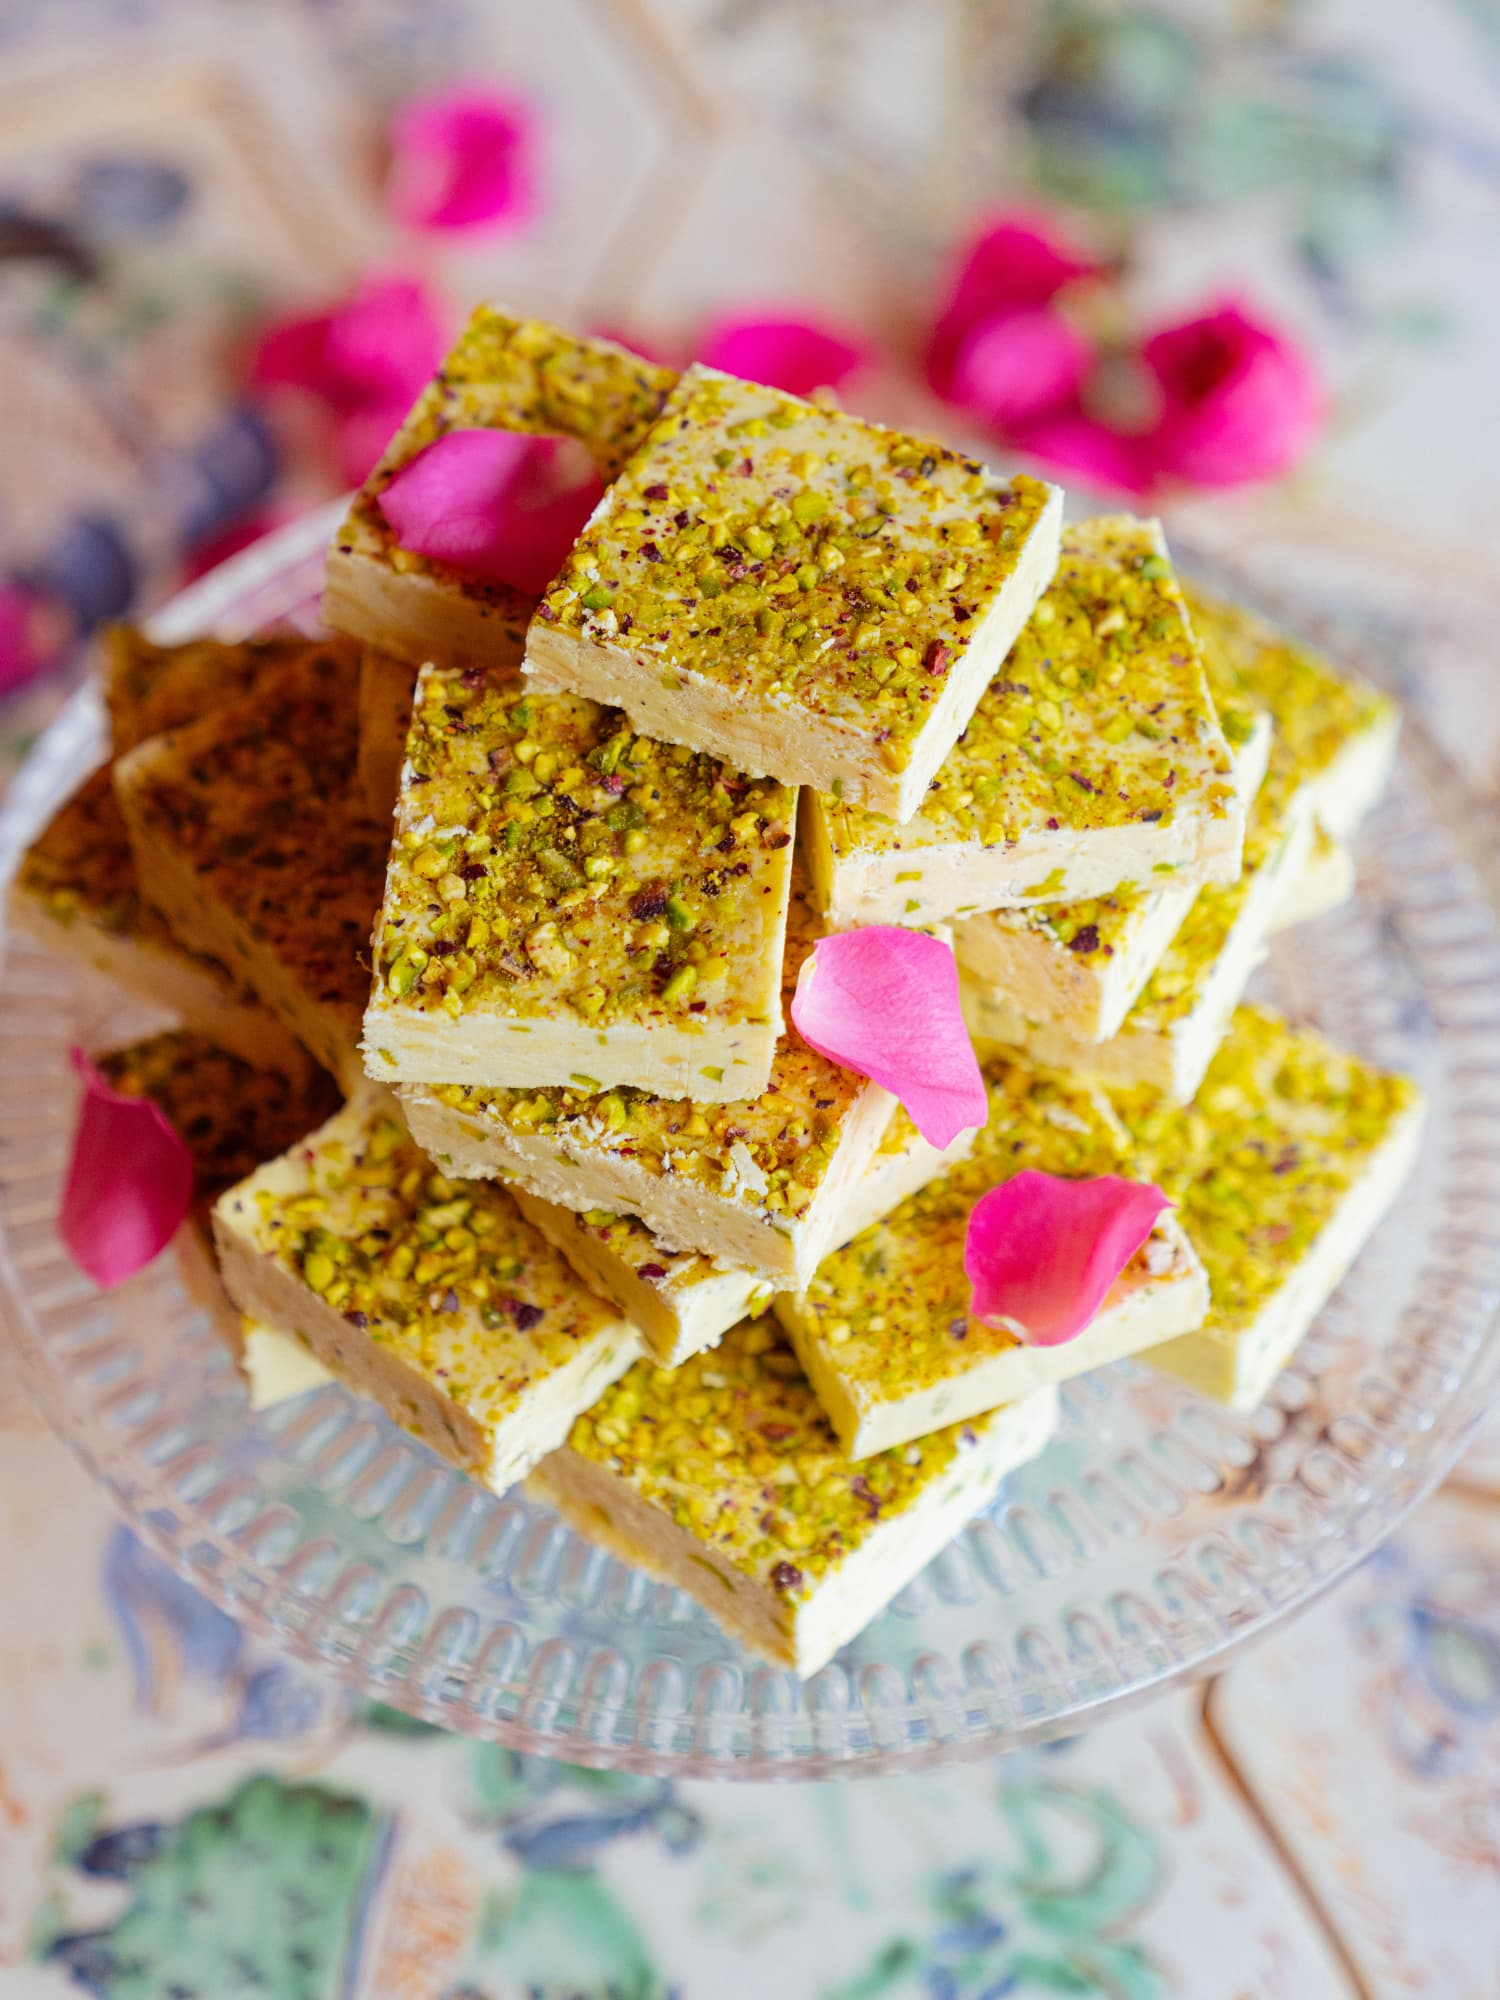 The Traditional Afghan Sweet I Make for Eid Every Year